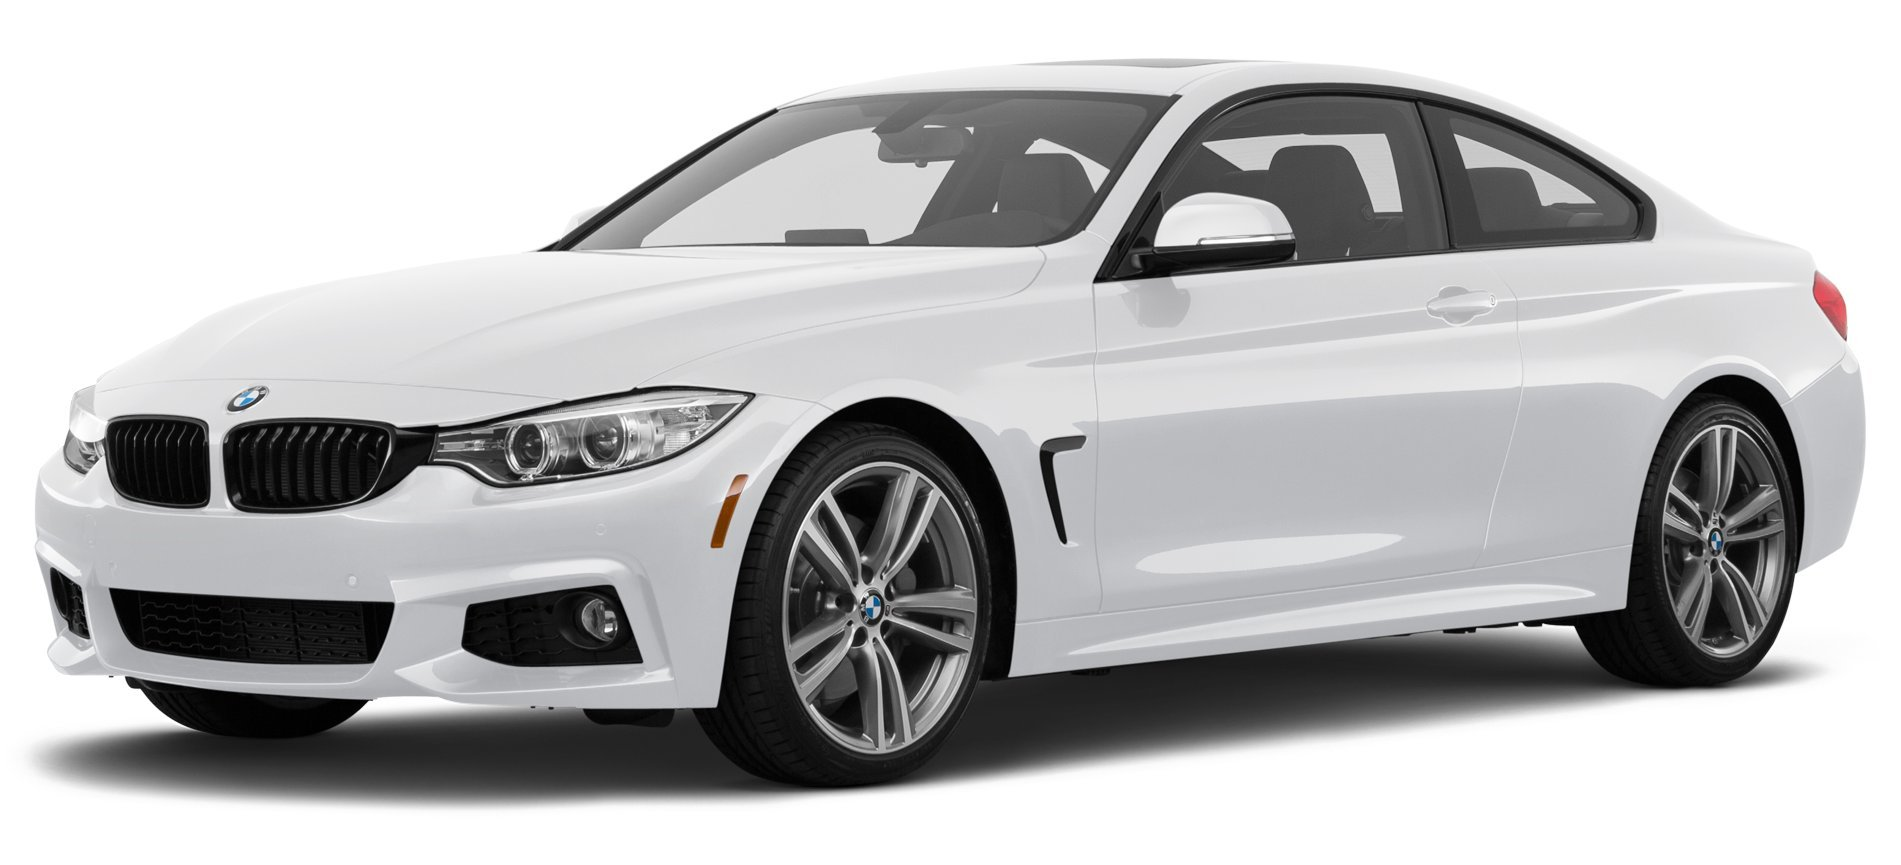 2017 bmw m240i xdrive reviews images and specs vehicles. Black Bedroom Furniture Sets. Home Design Ideas